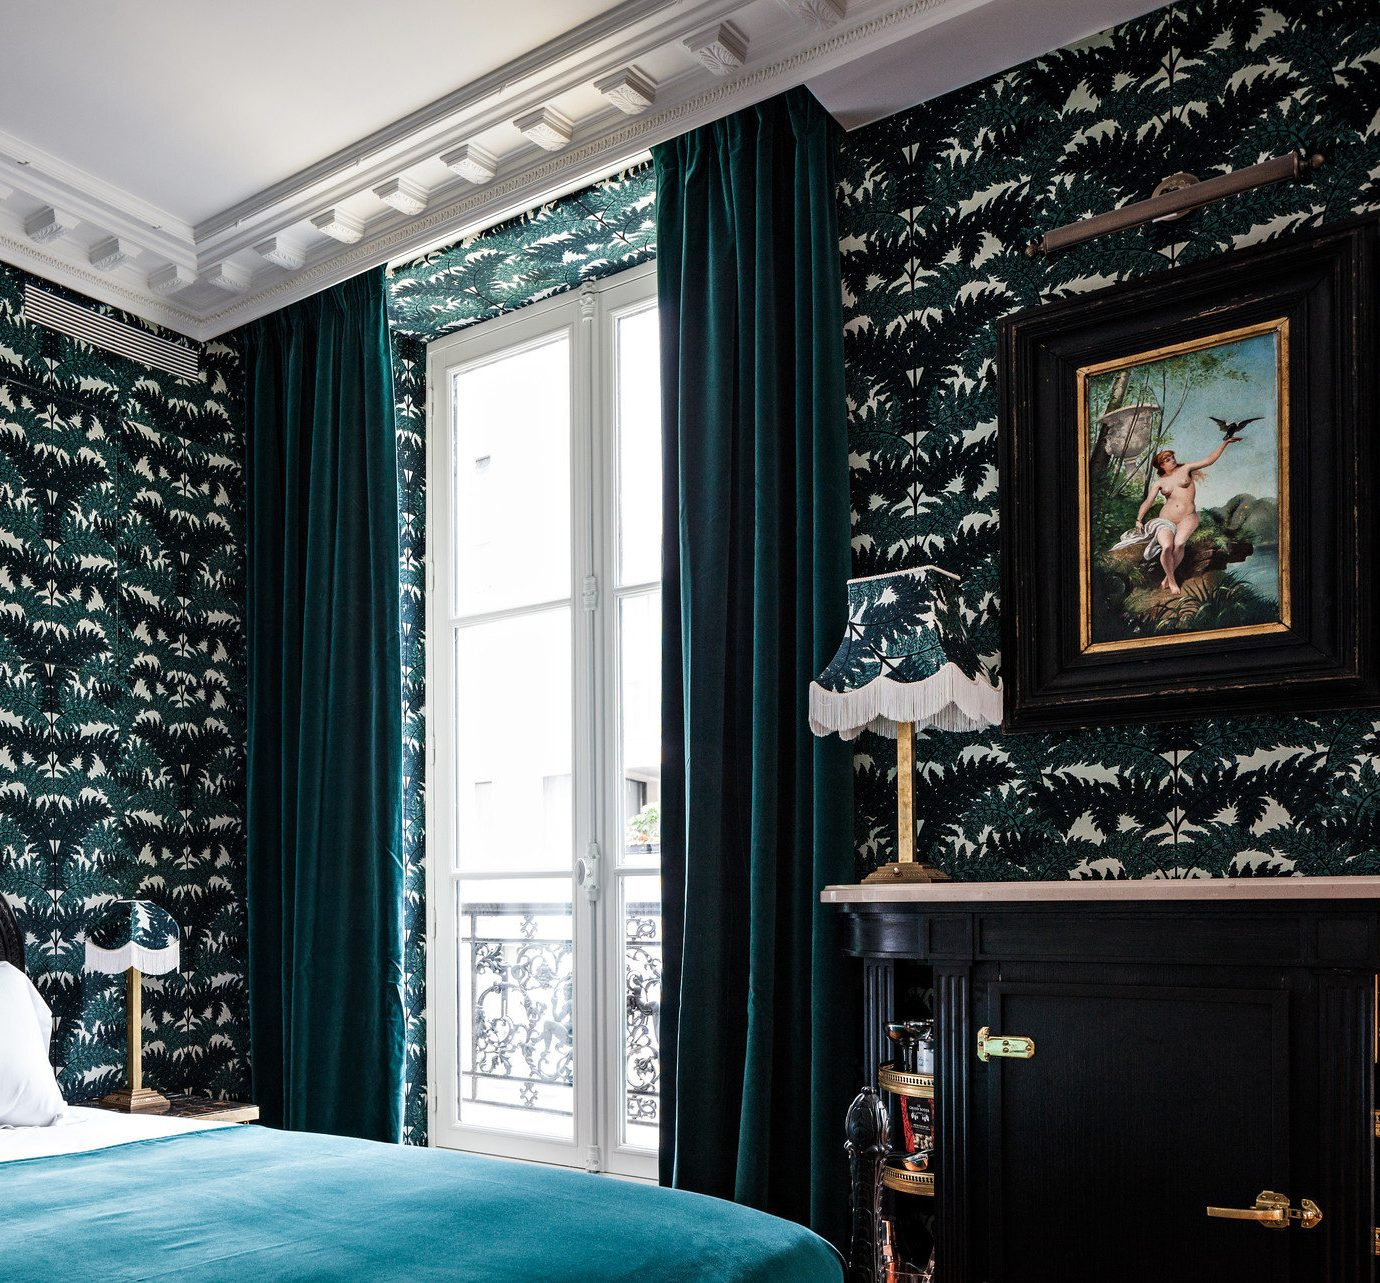 artsy bed Bedroom Boutique Boutique Hotels chic contrasty dim Hip Hotels  Luxury trendy wallpaper indoor room d5867f0bcbf